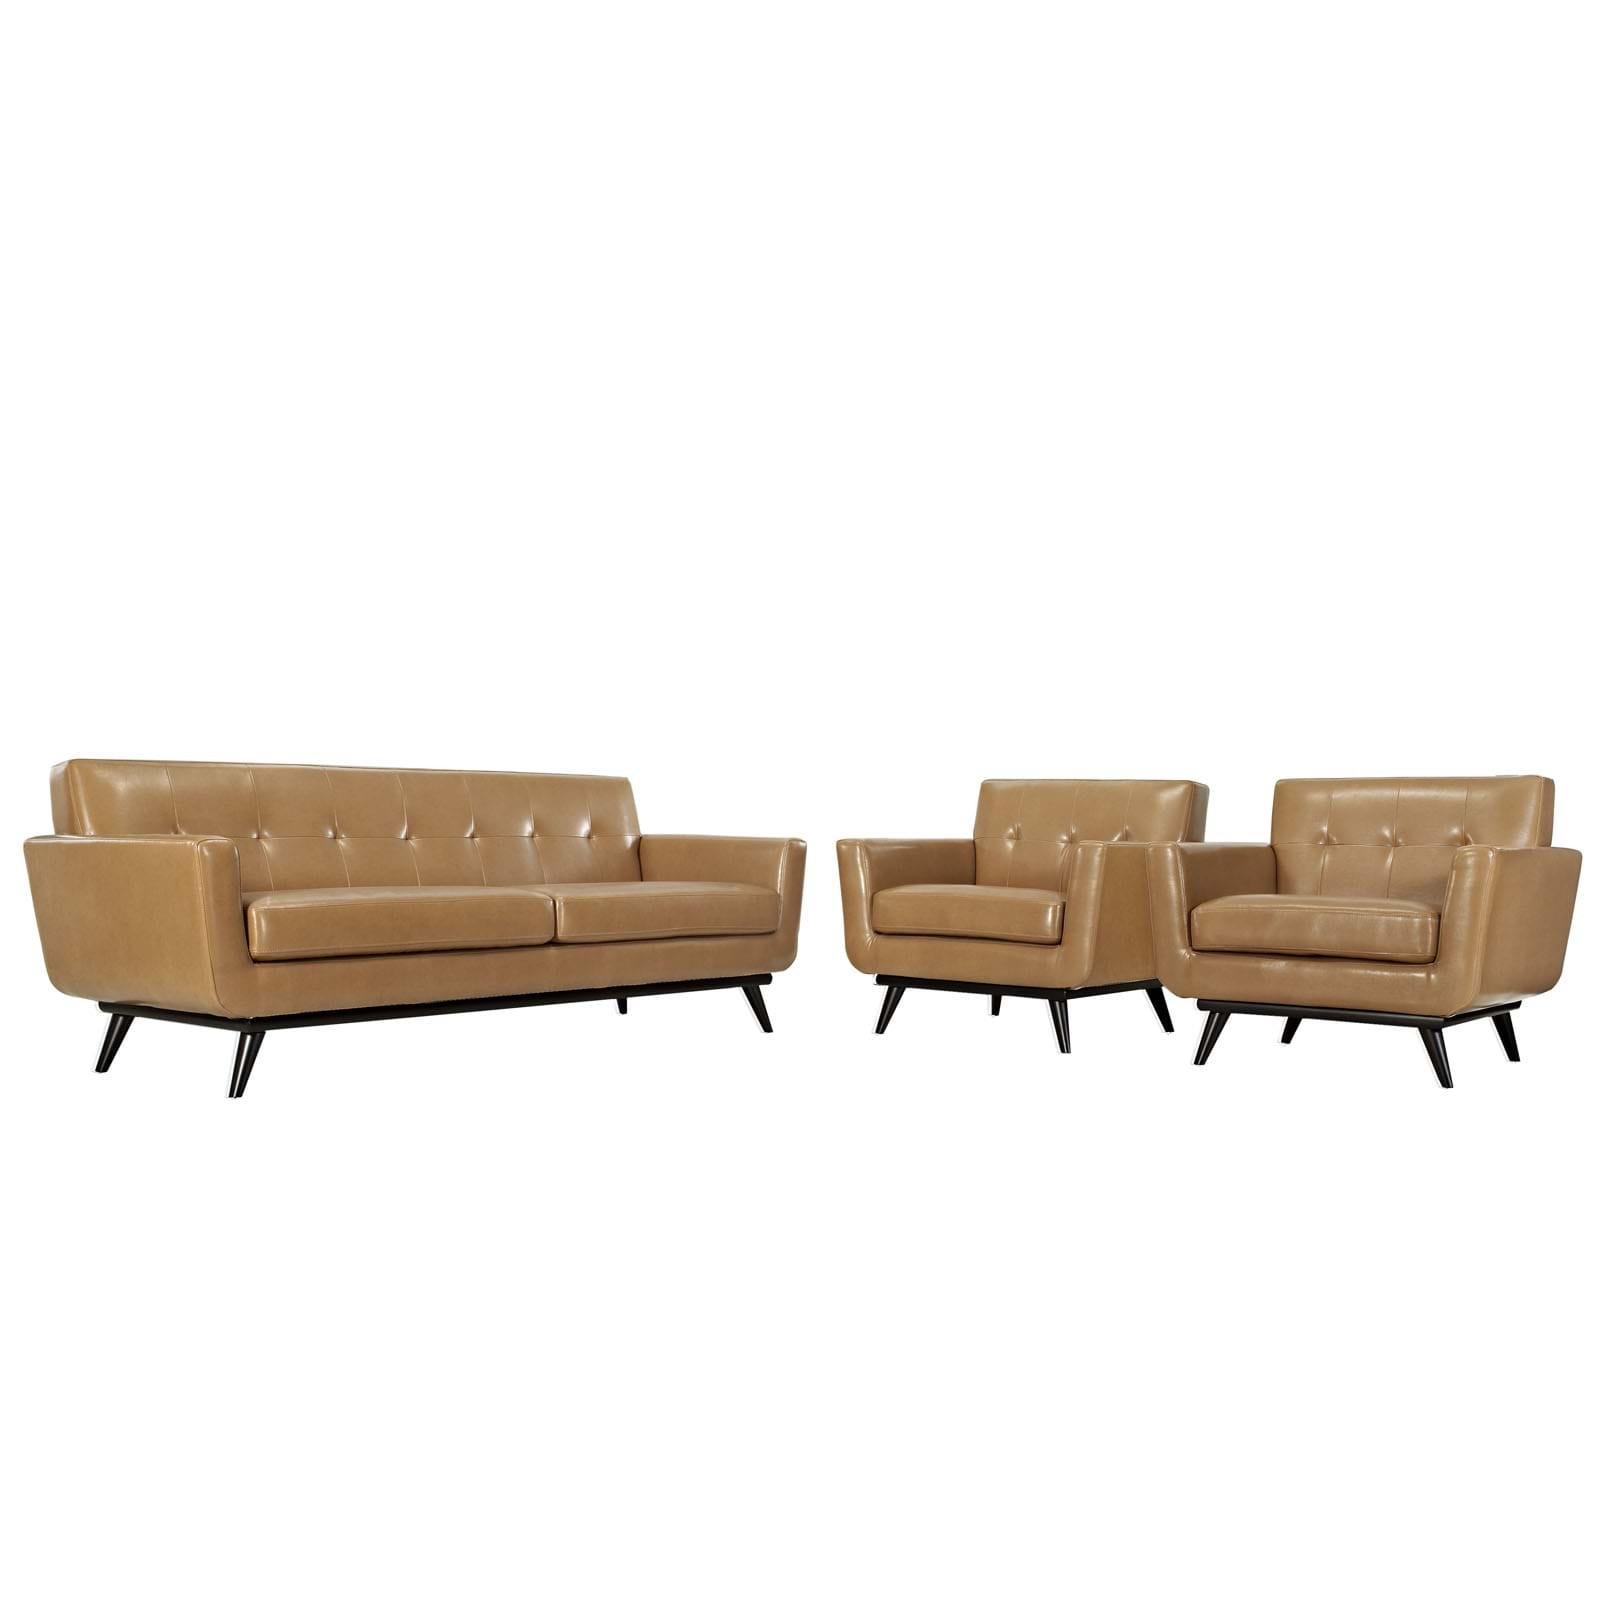 Engage Leather Living Room Set - 3 Piece